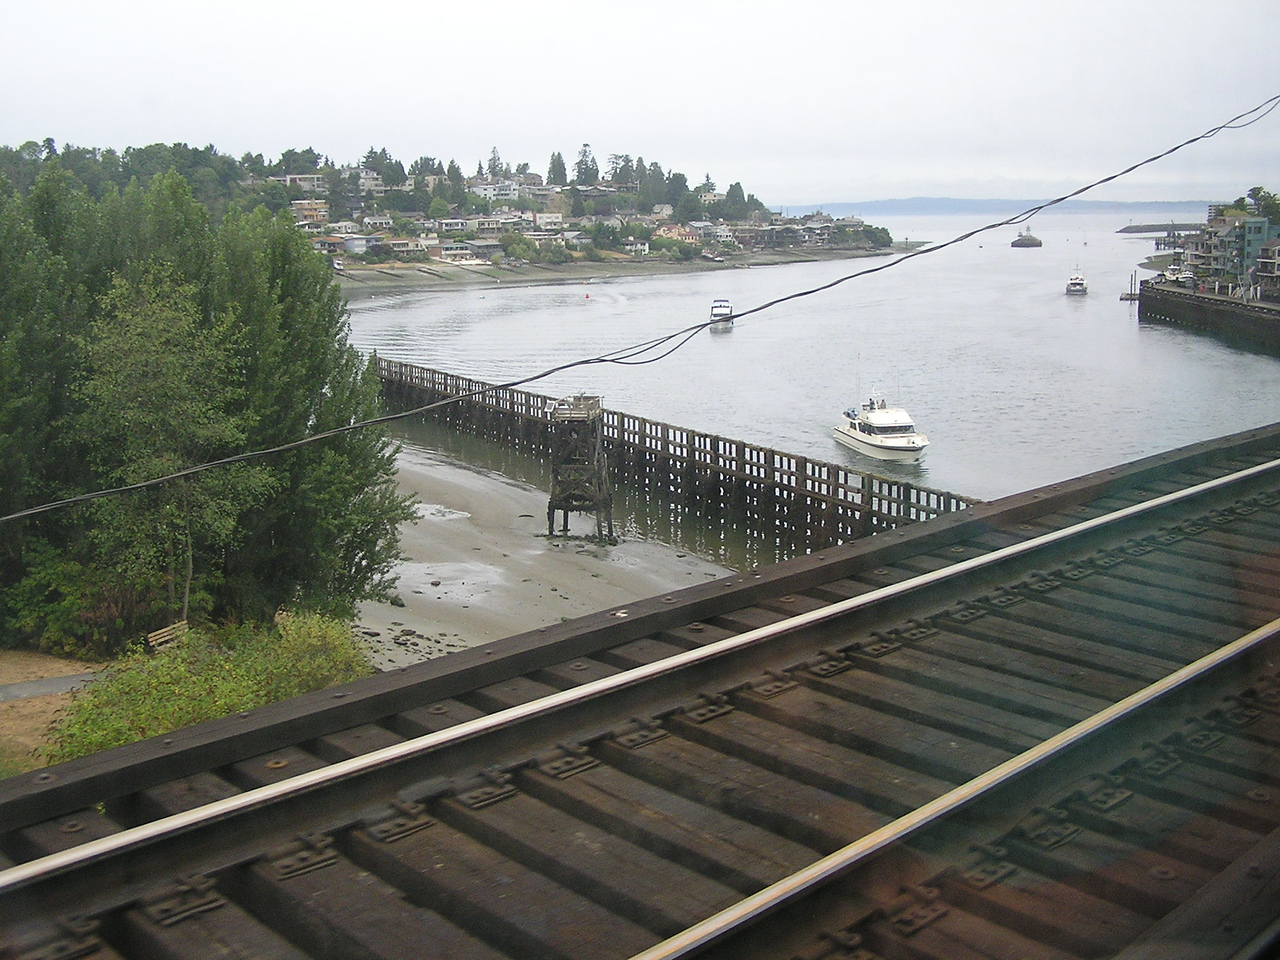 Looking towards Puget Sound from Ship Canal railroad bridge just west of the locks ...